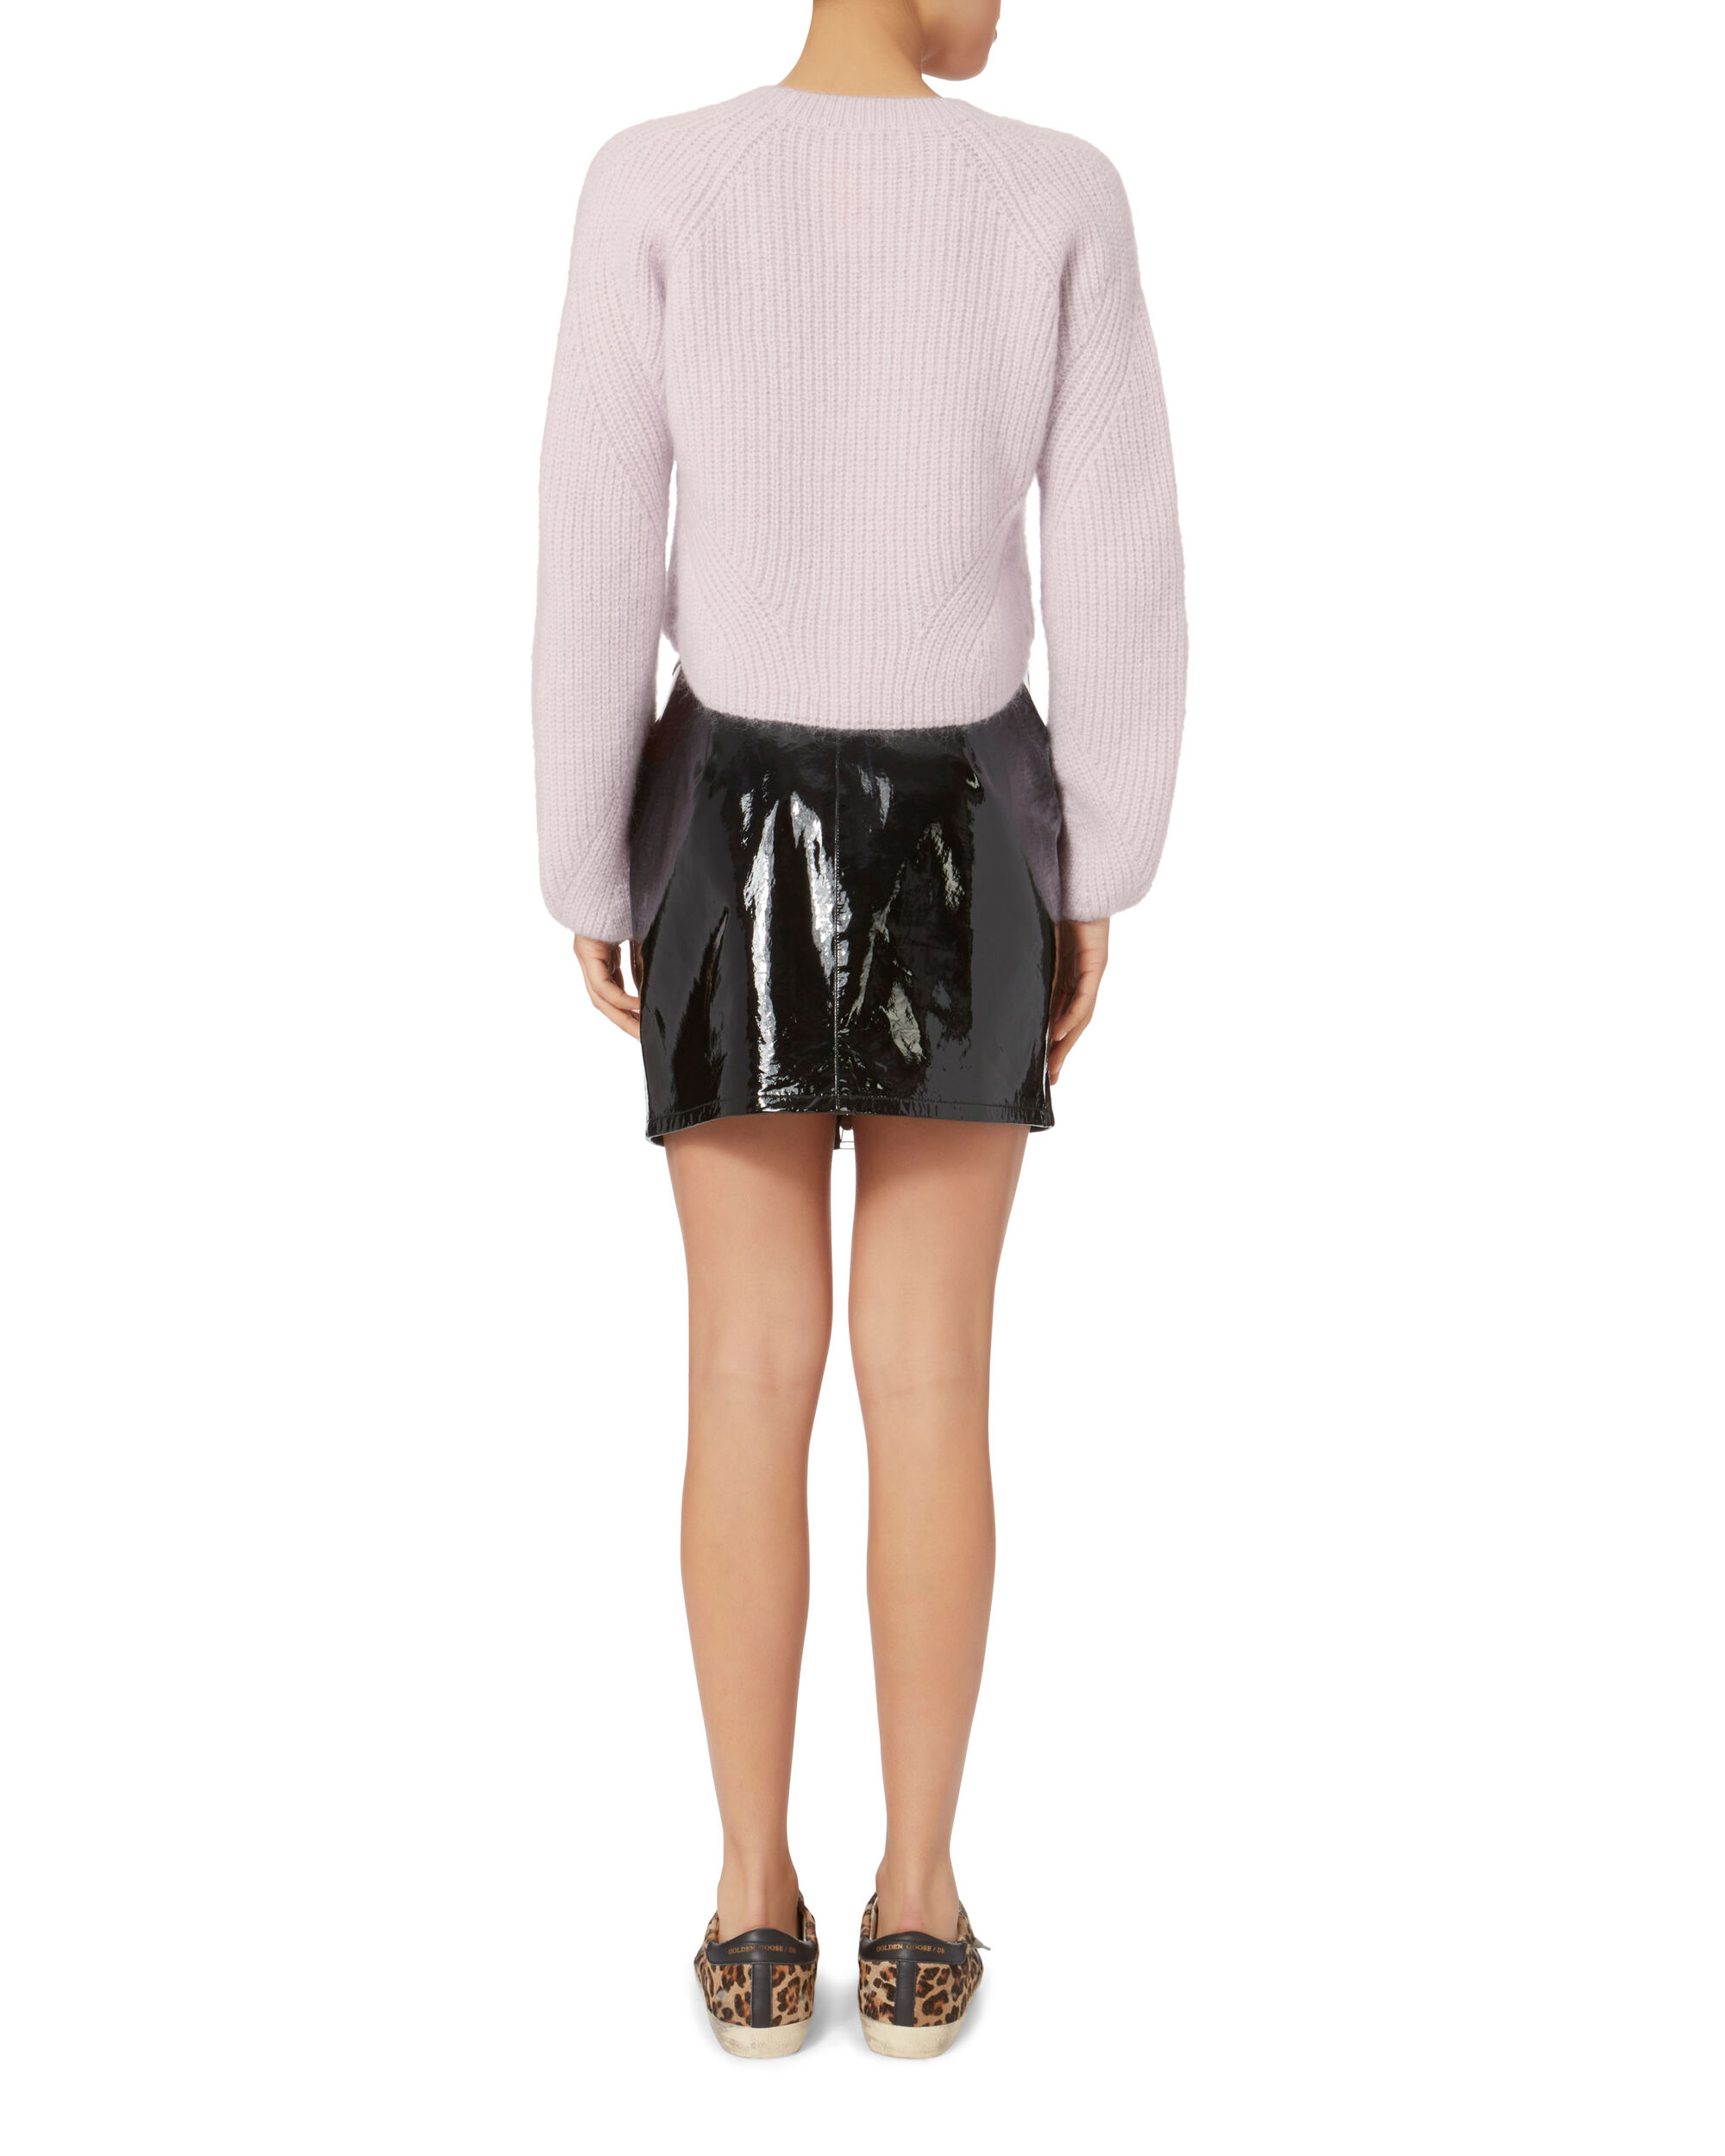 Luella Cropped Pullover Sweater, PURPLE-LT, hi-res